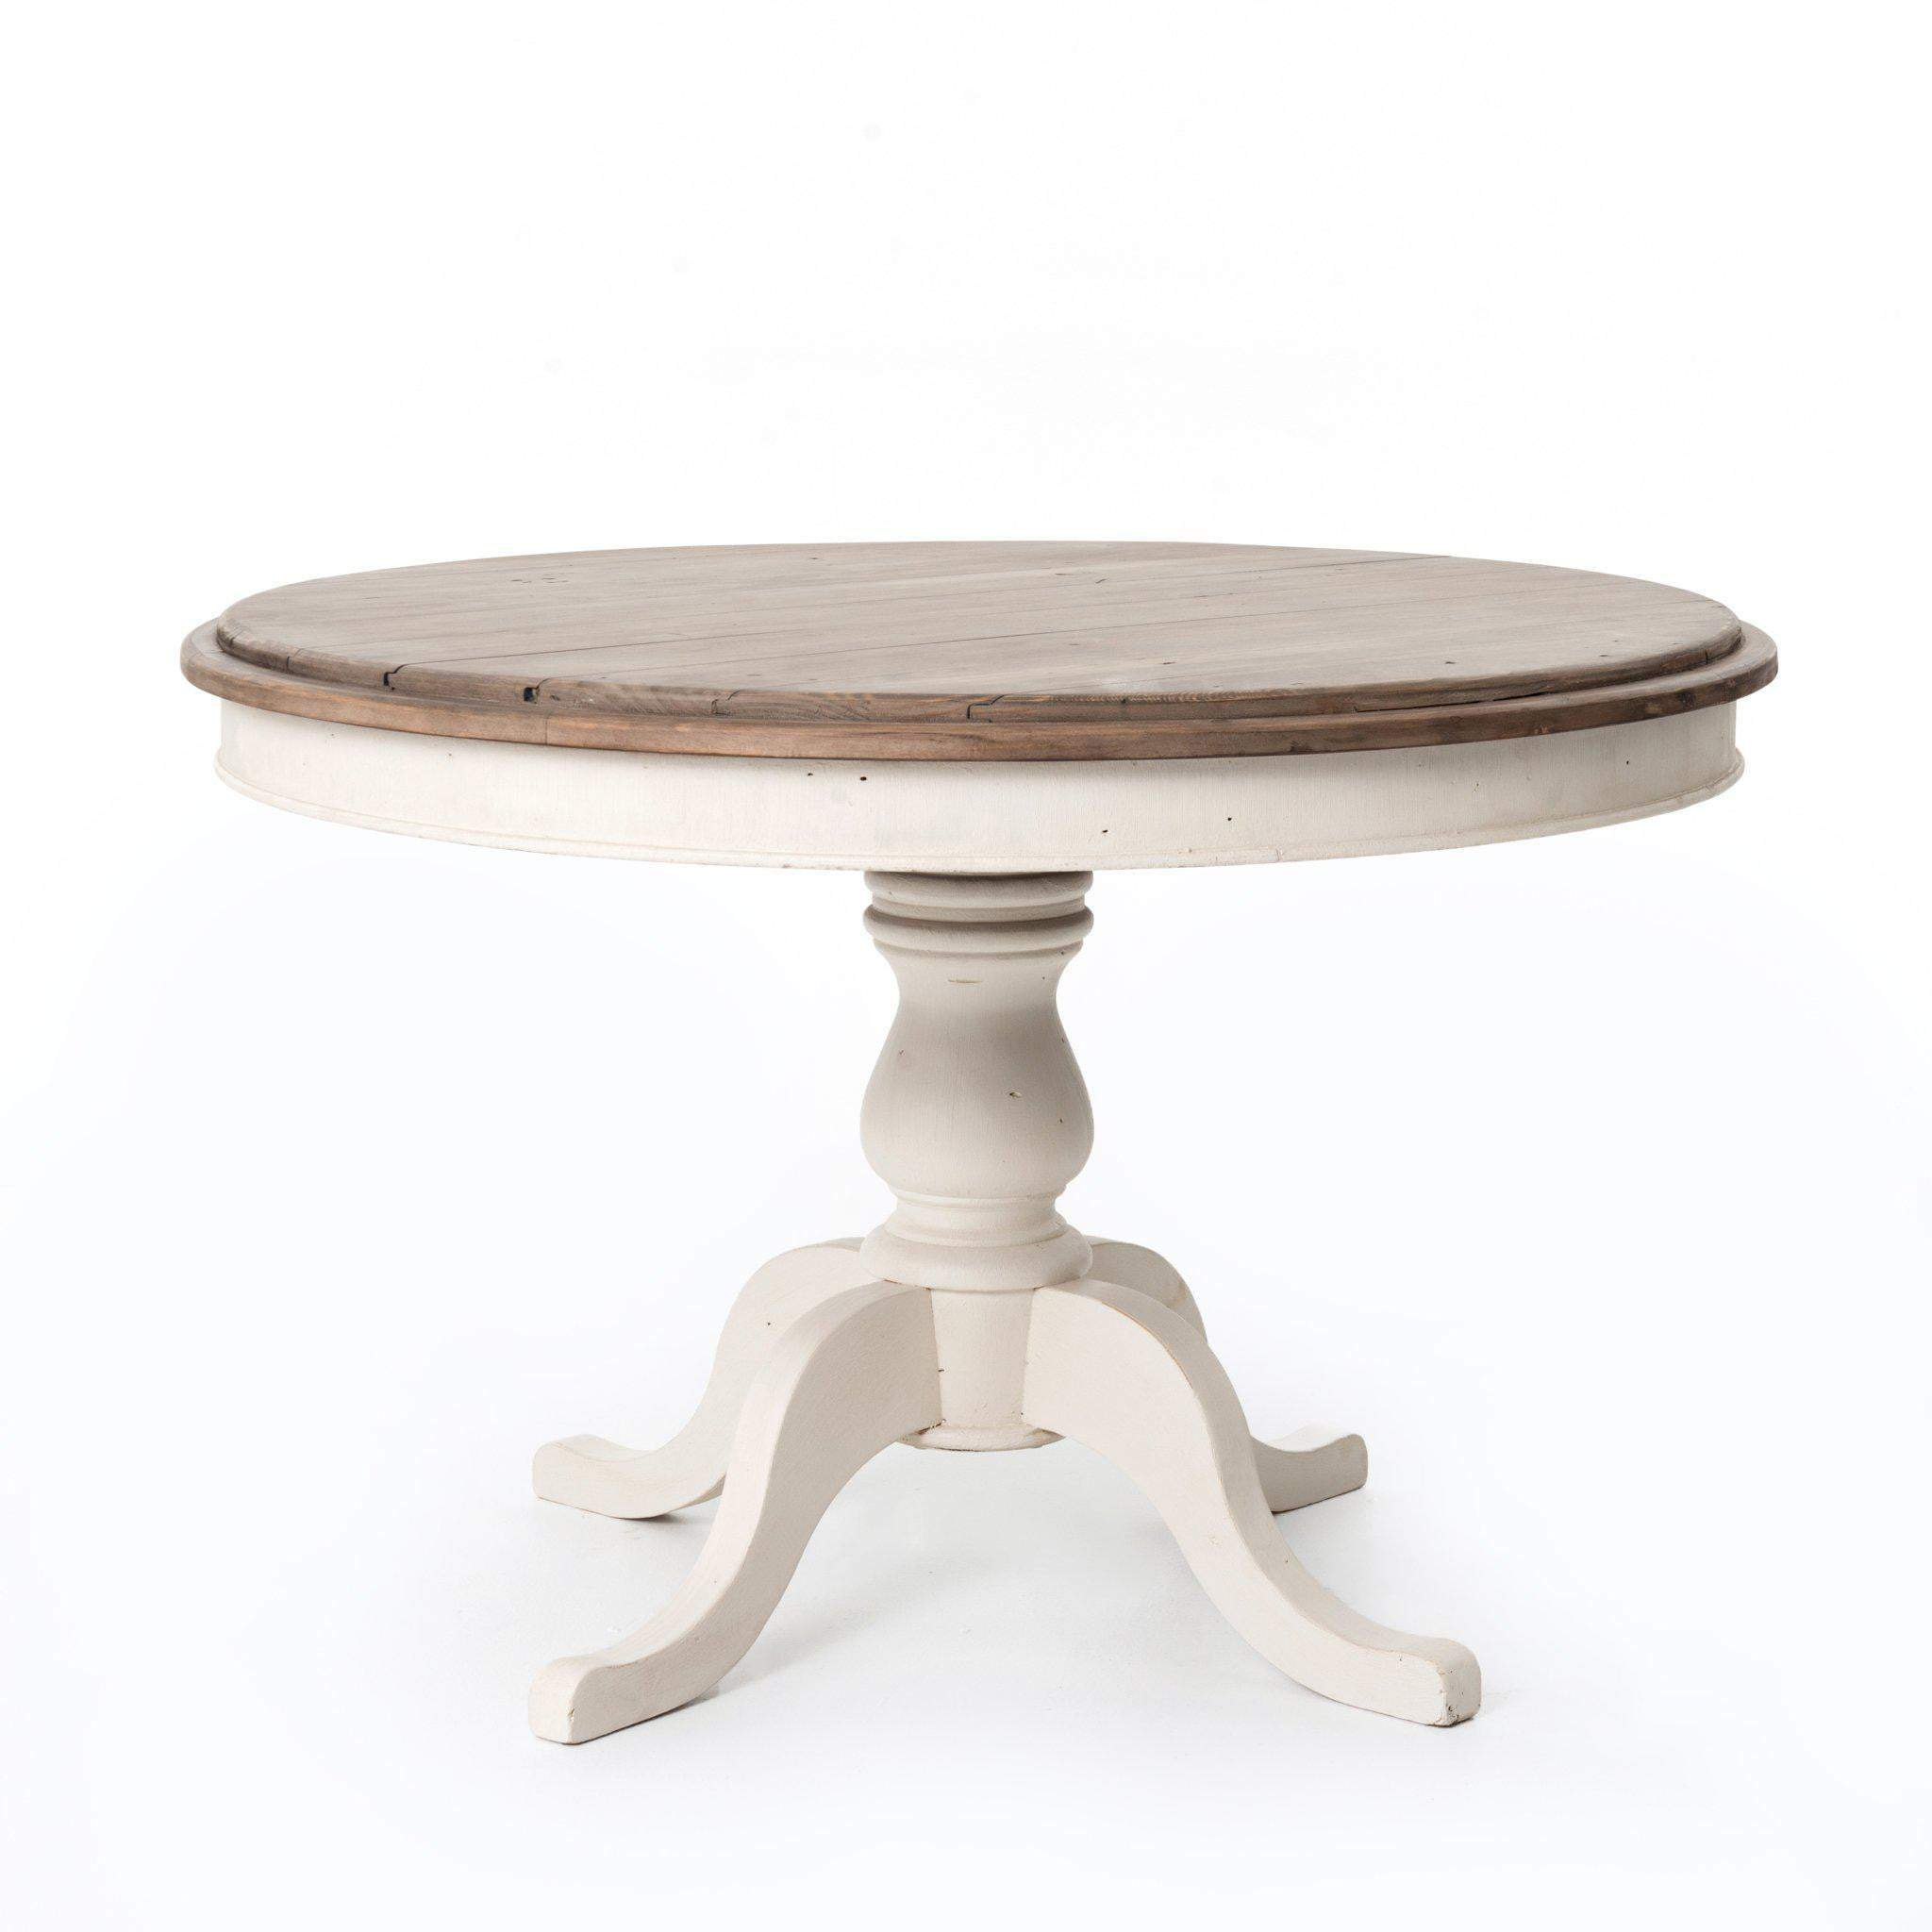 Cornwall Round Dining Table 47